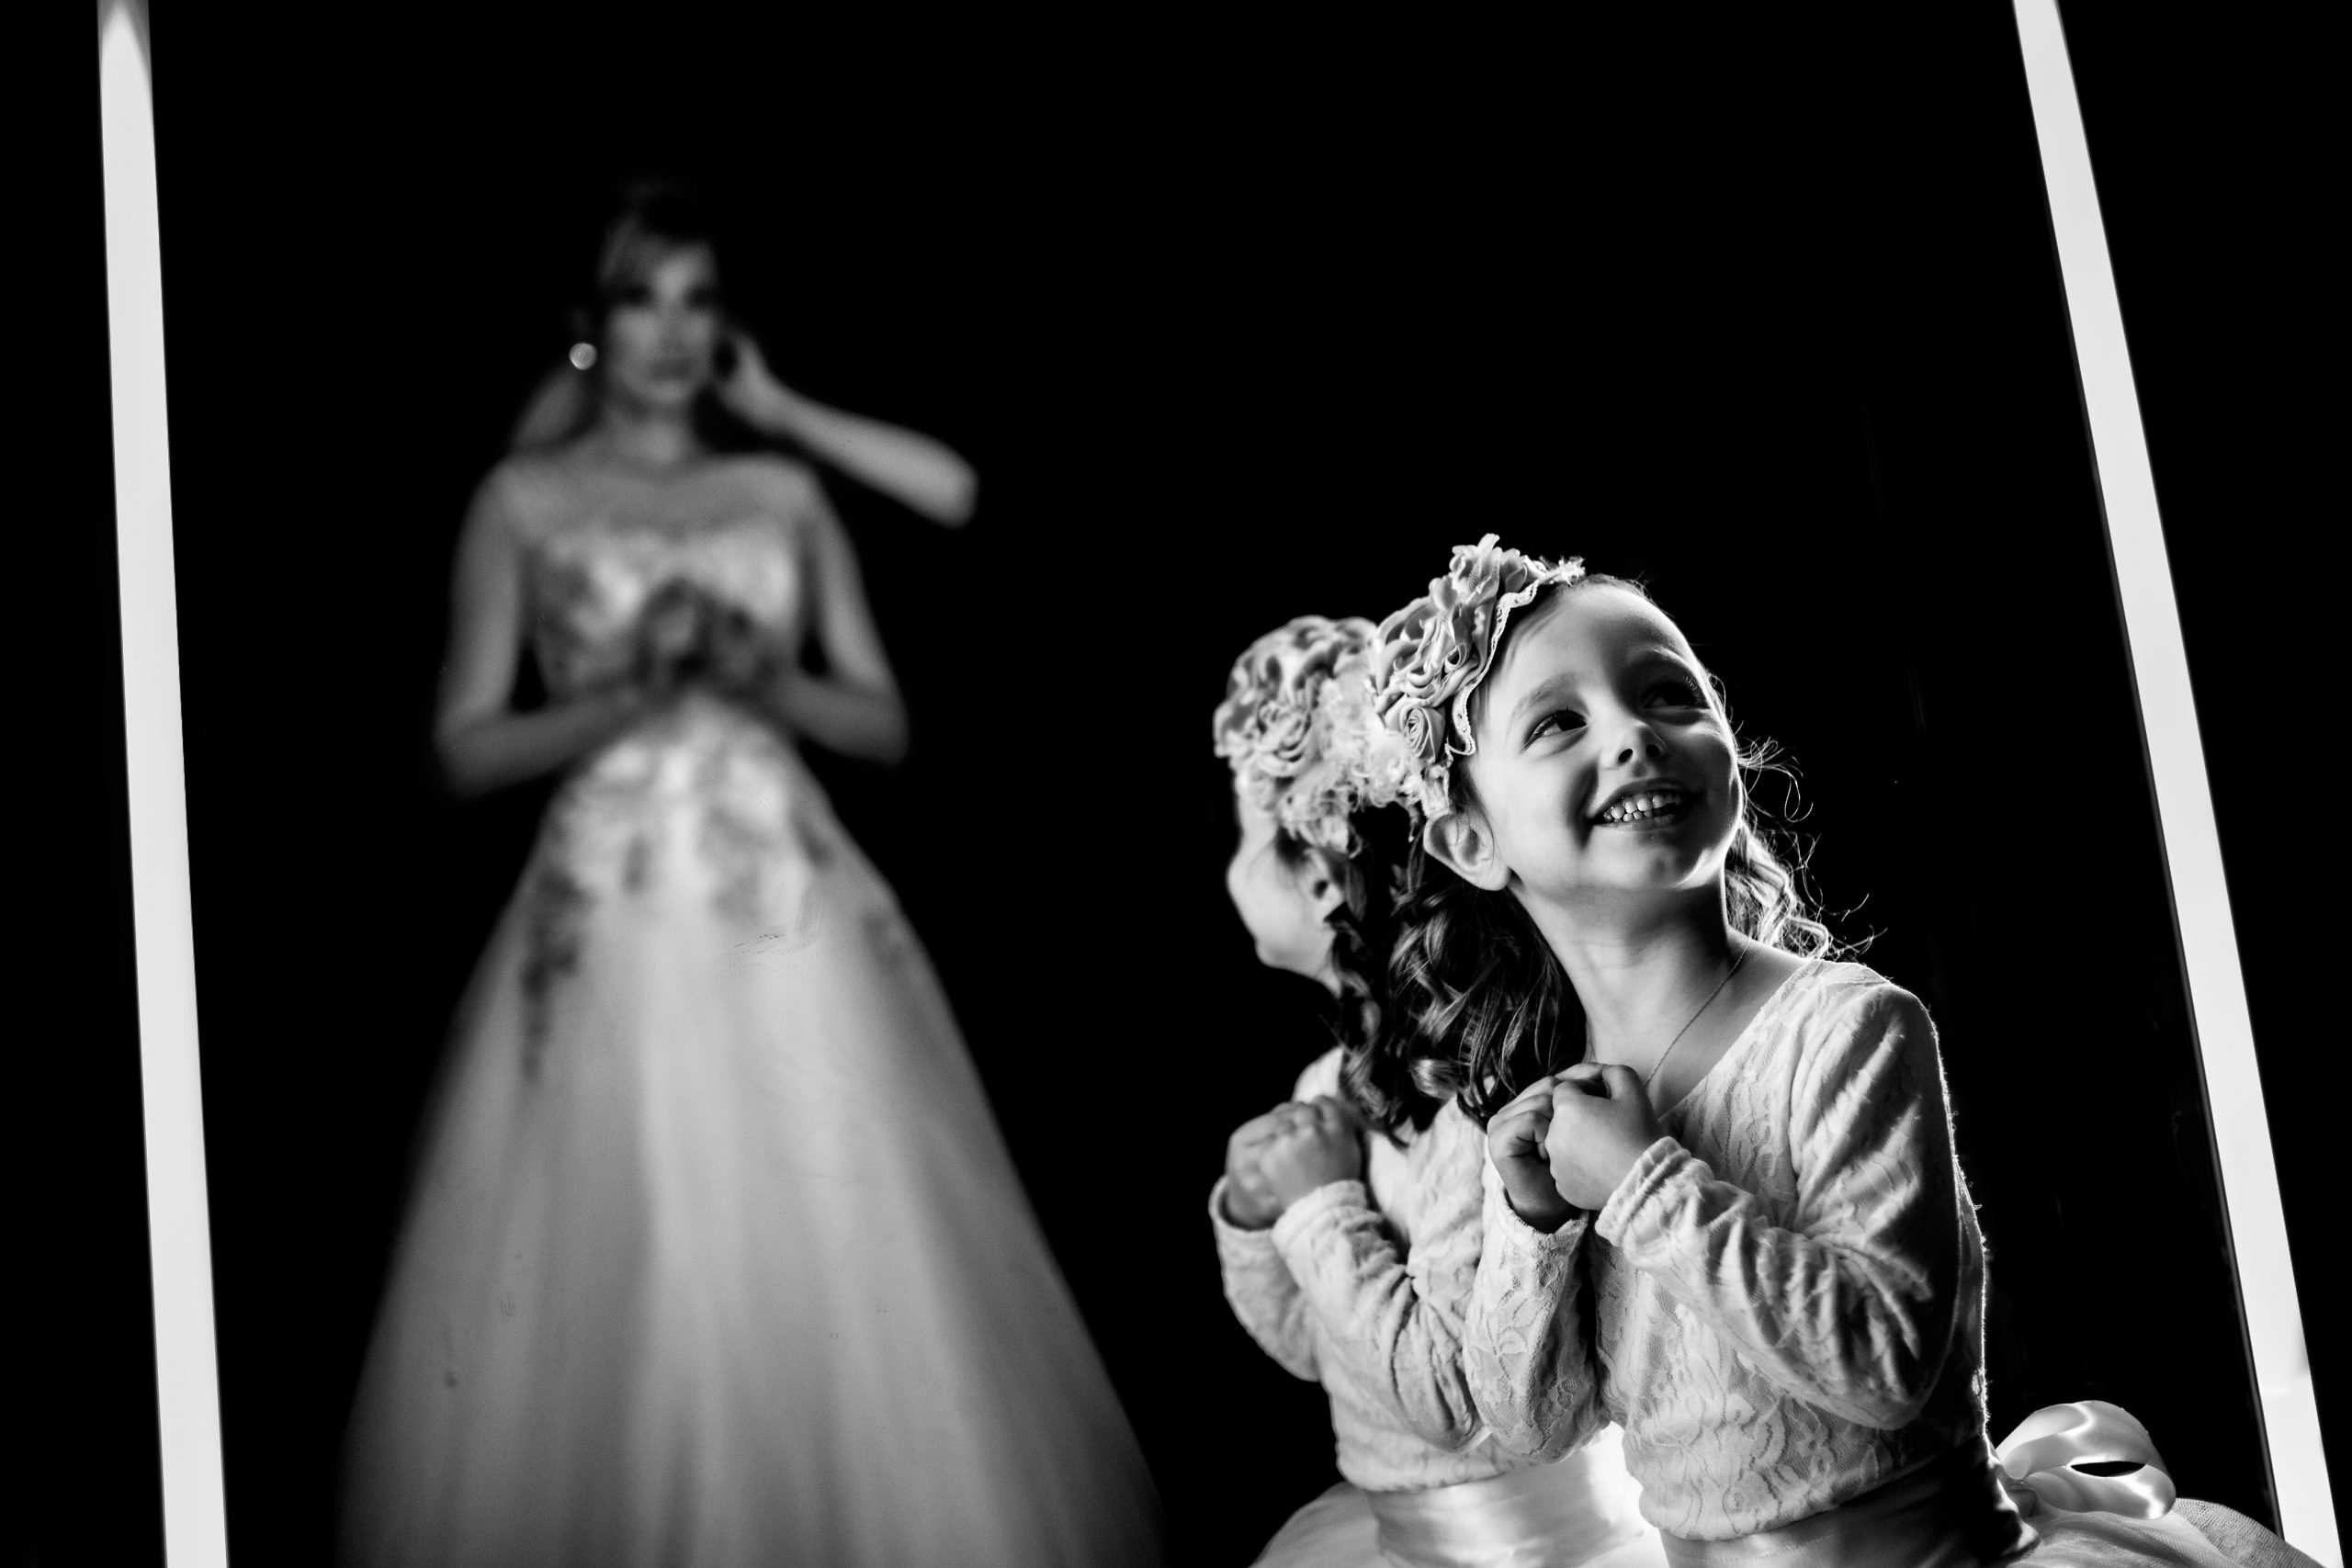 Young girl smiles as she looks at woman in wedding dress